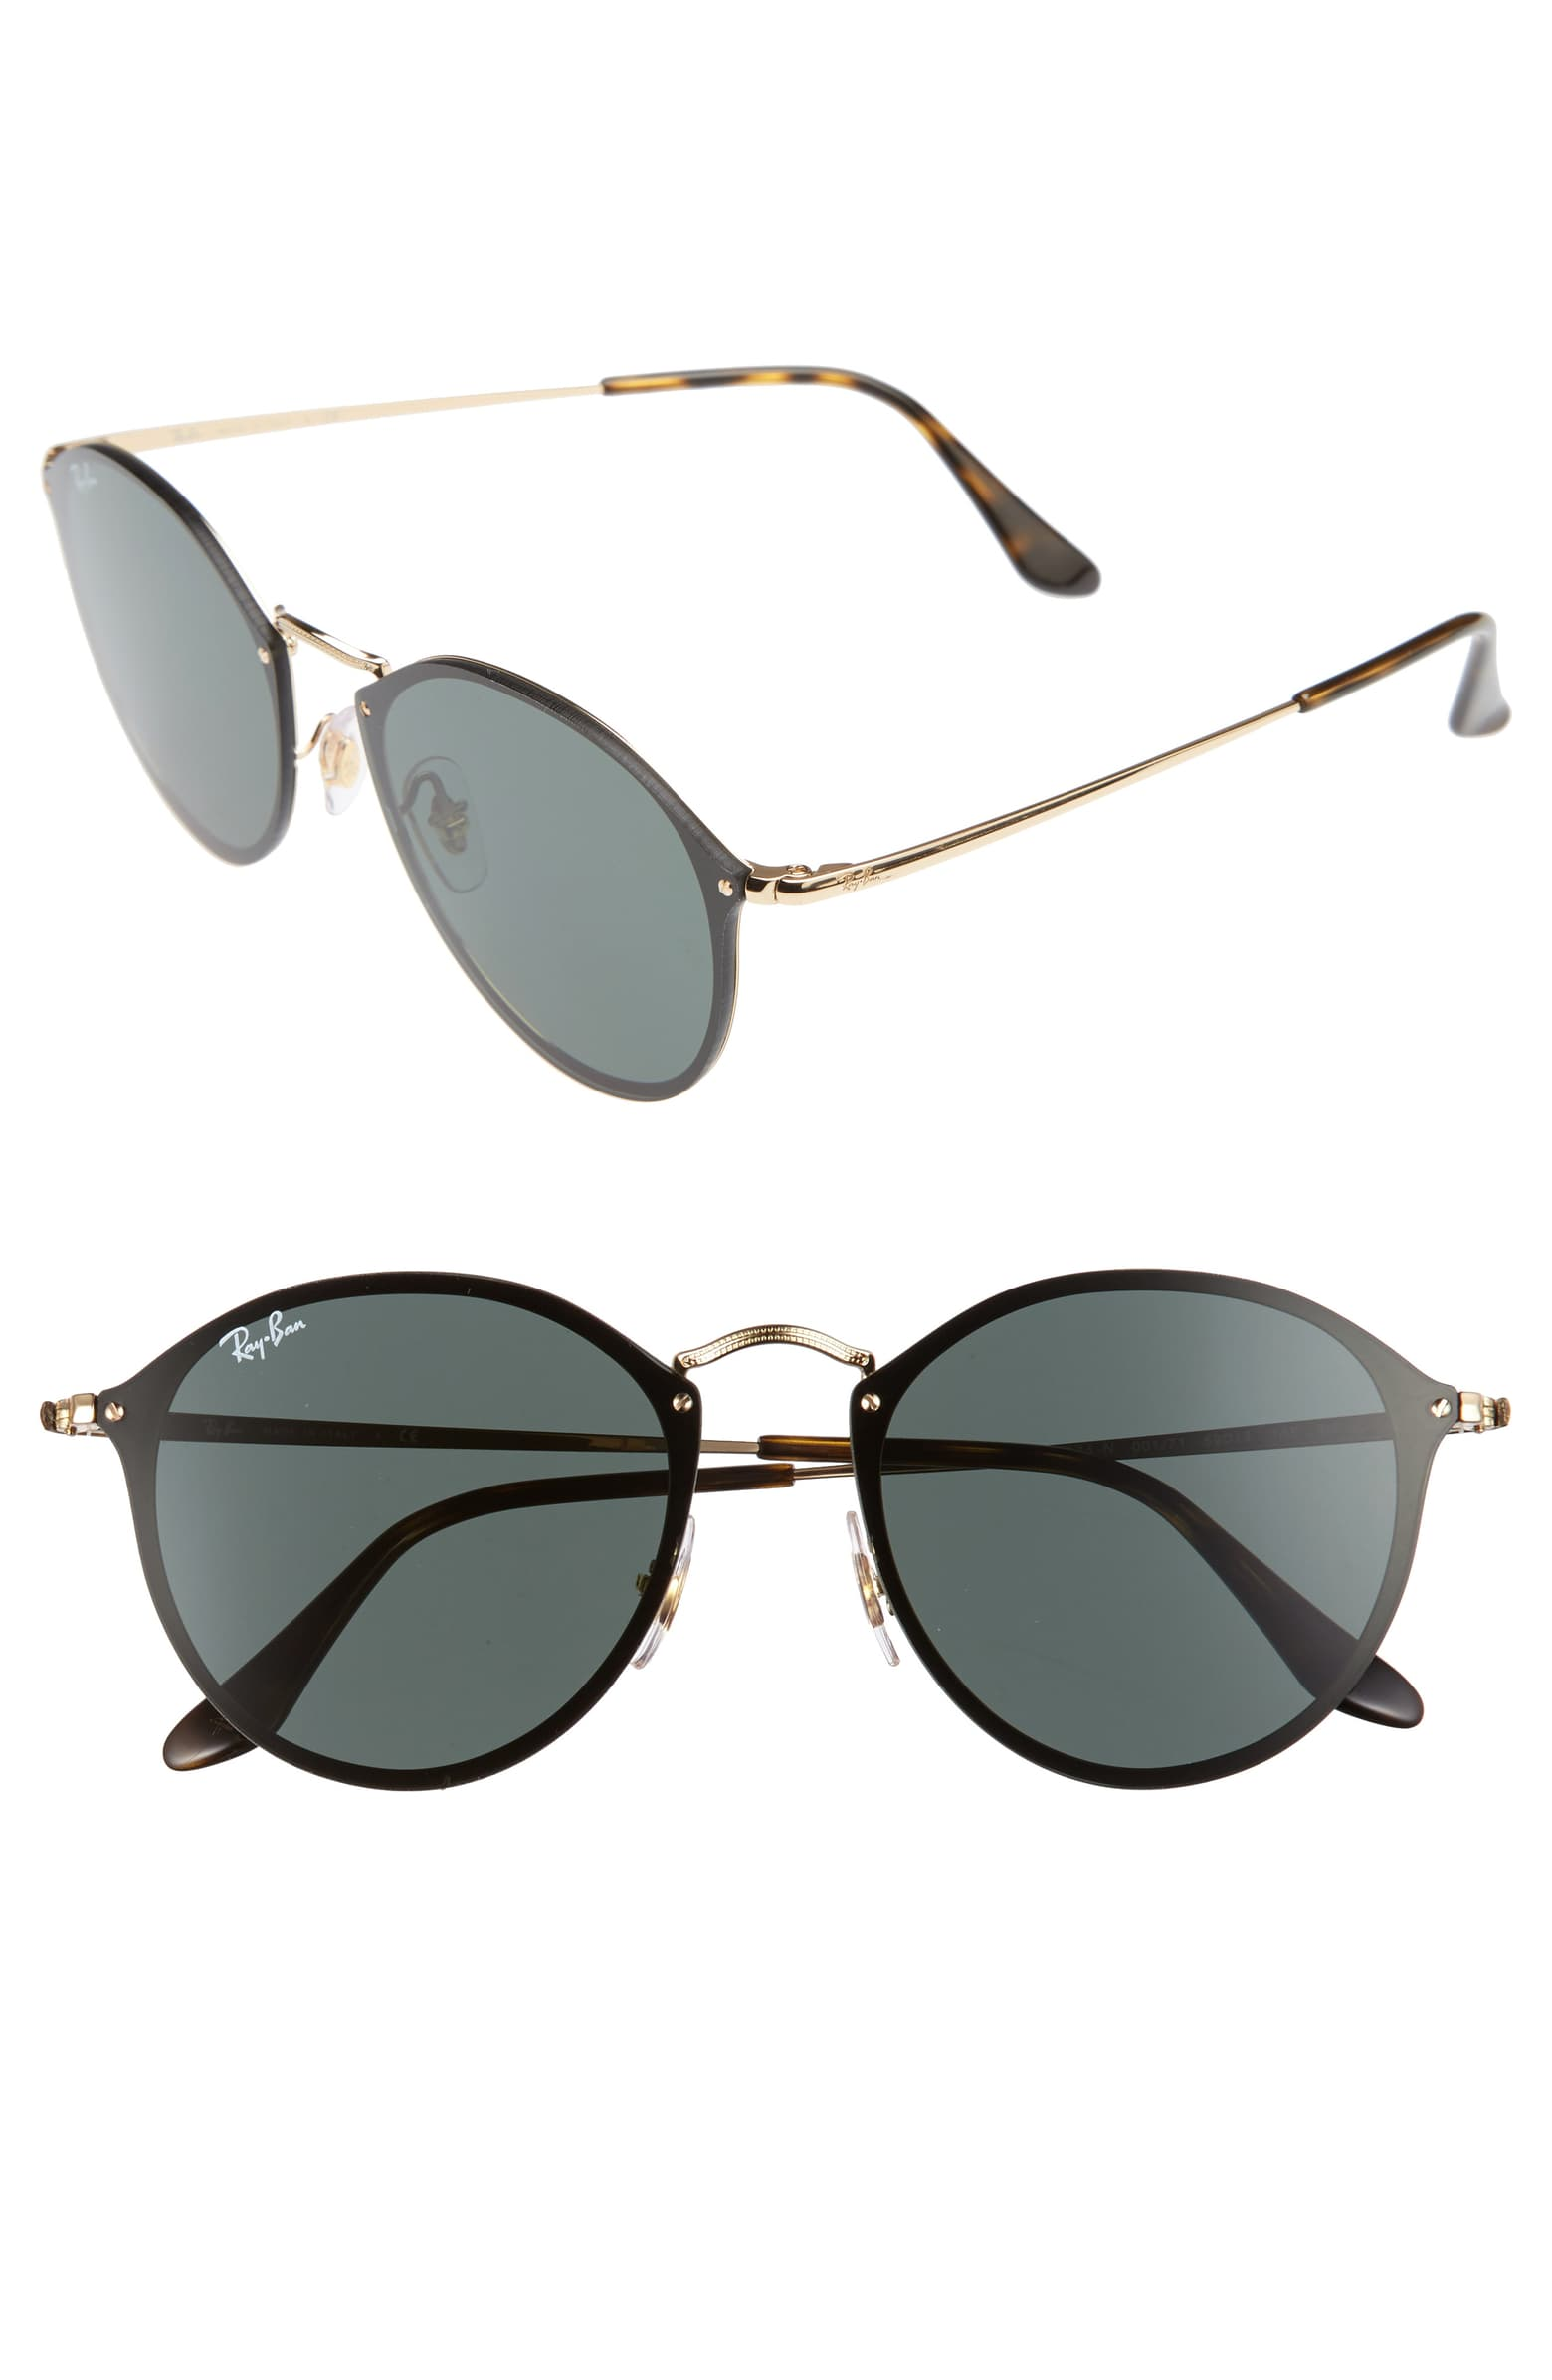 These sunnies elevate ANY look! They are super stylish :)